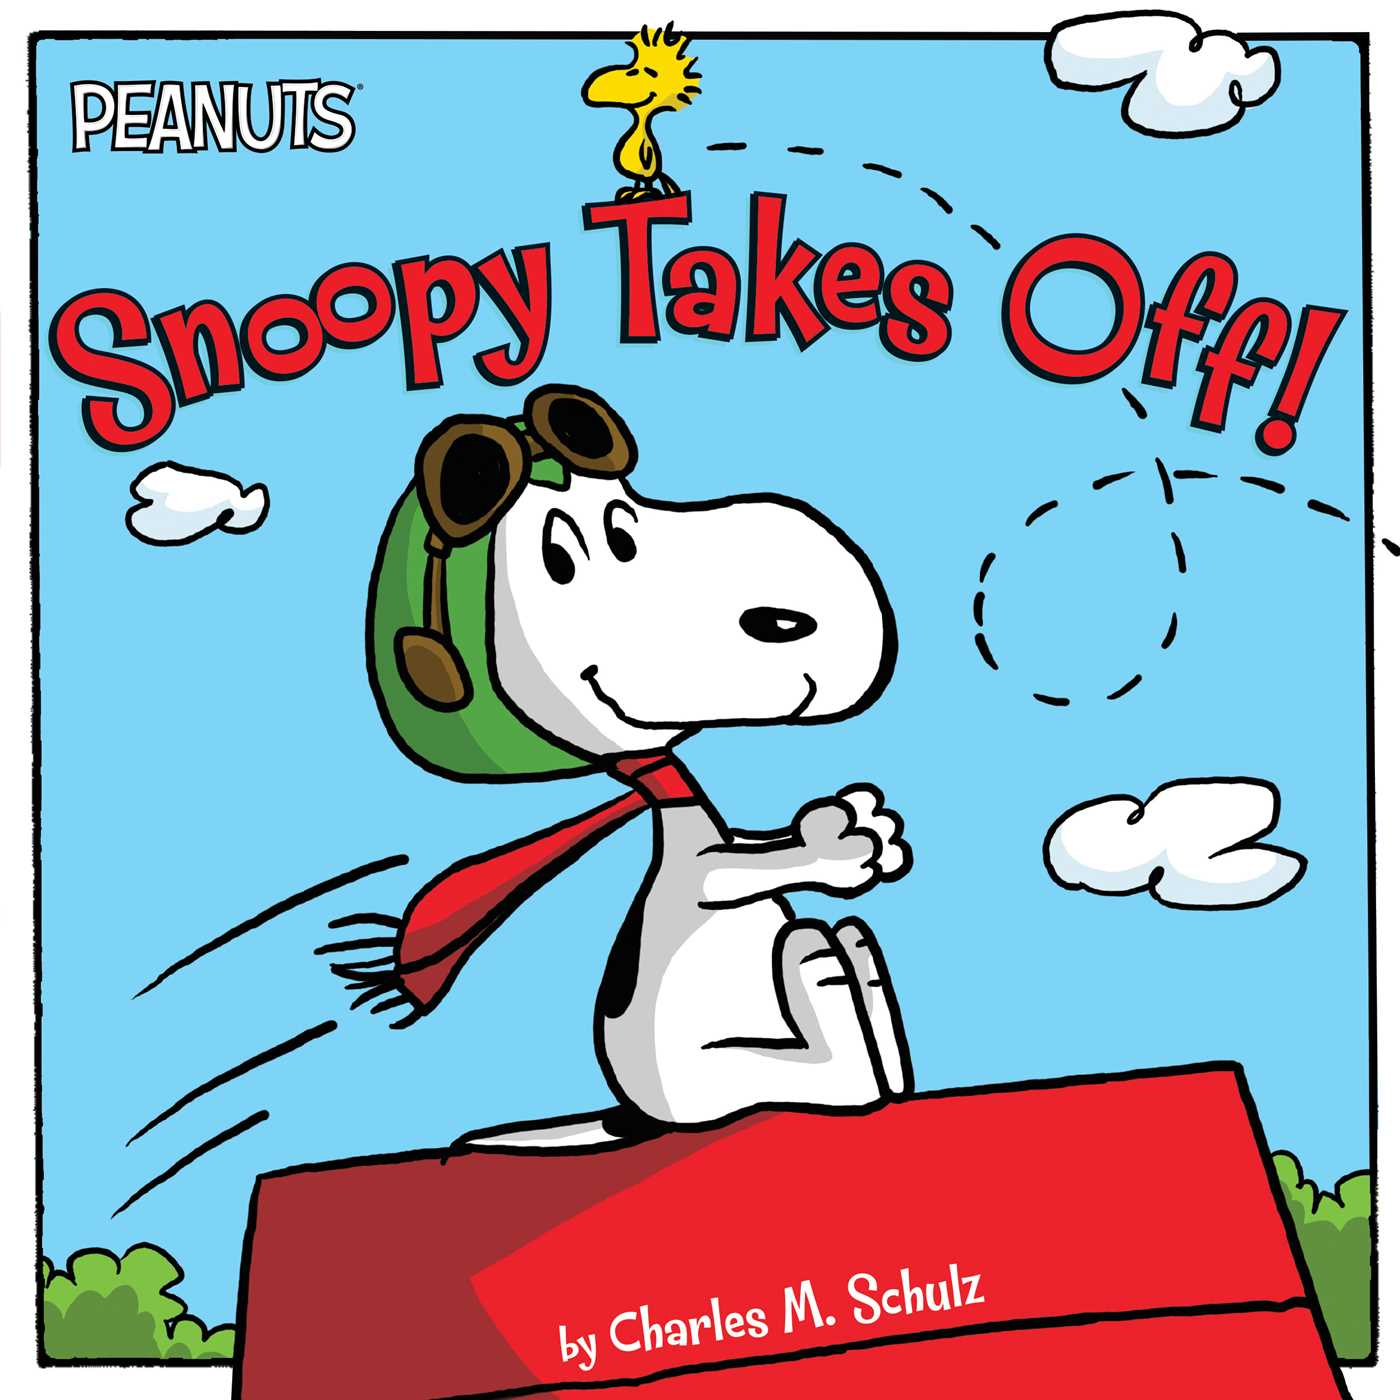 Snoopy-takes-off!-9781481425544_hr